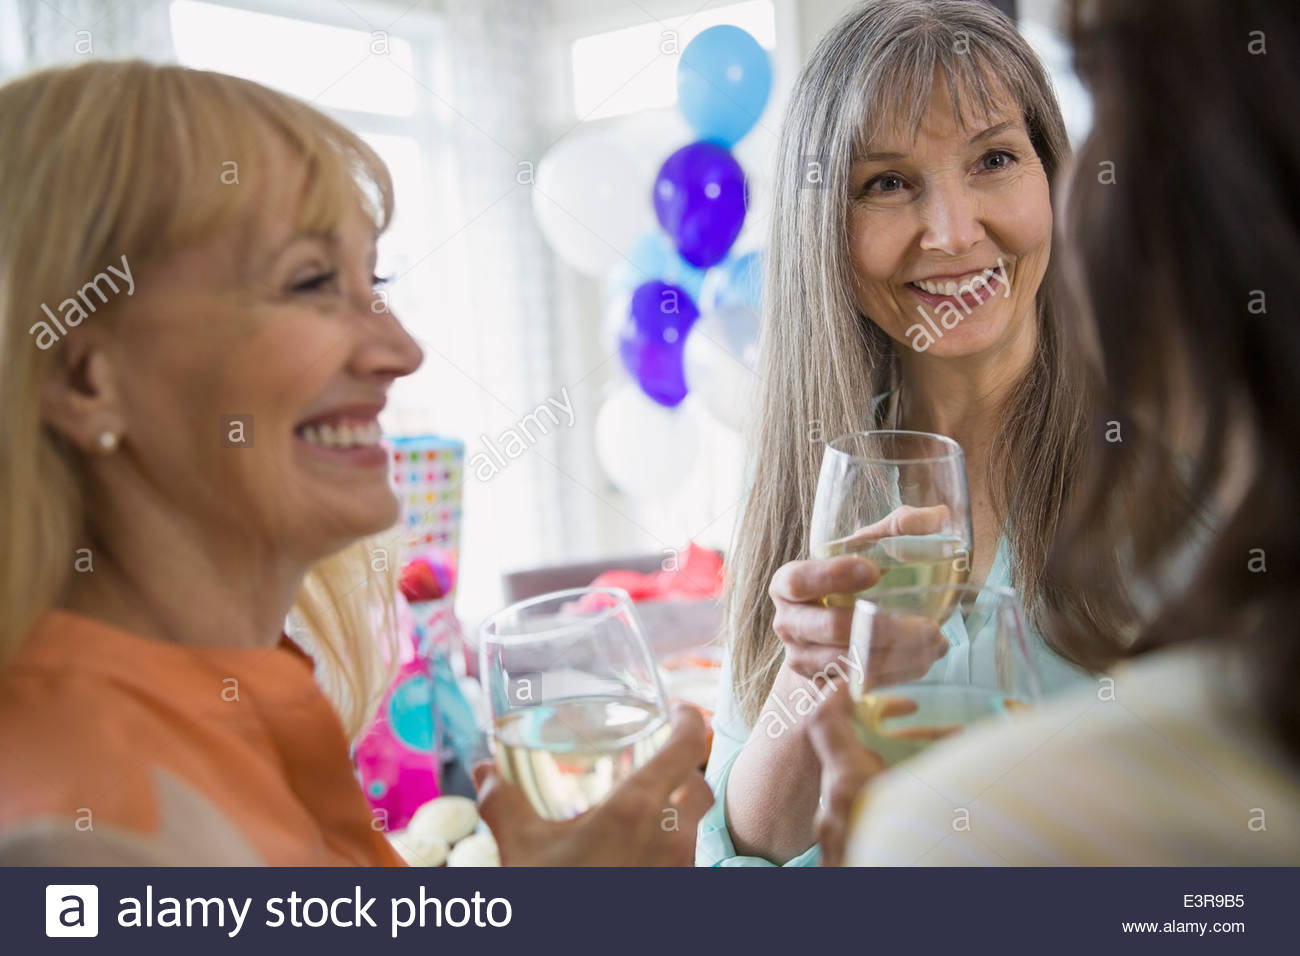 Women talking and drinking white wine at party - Stock Image